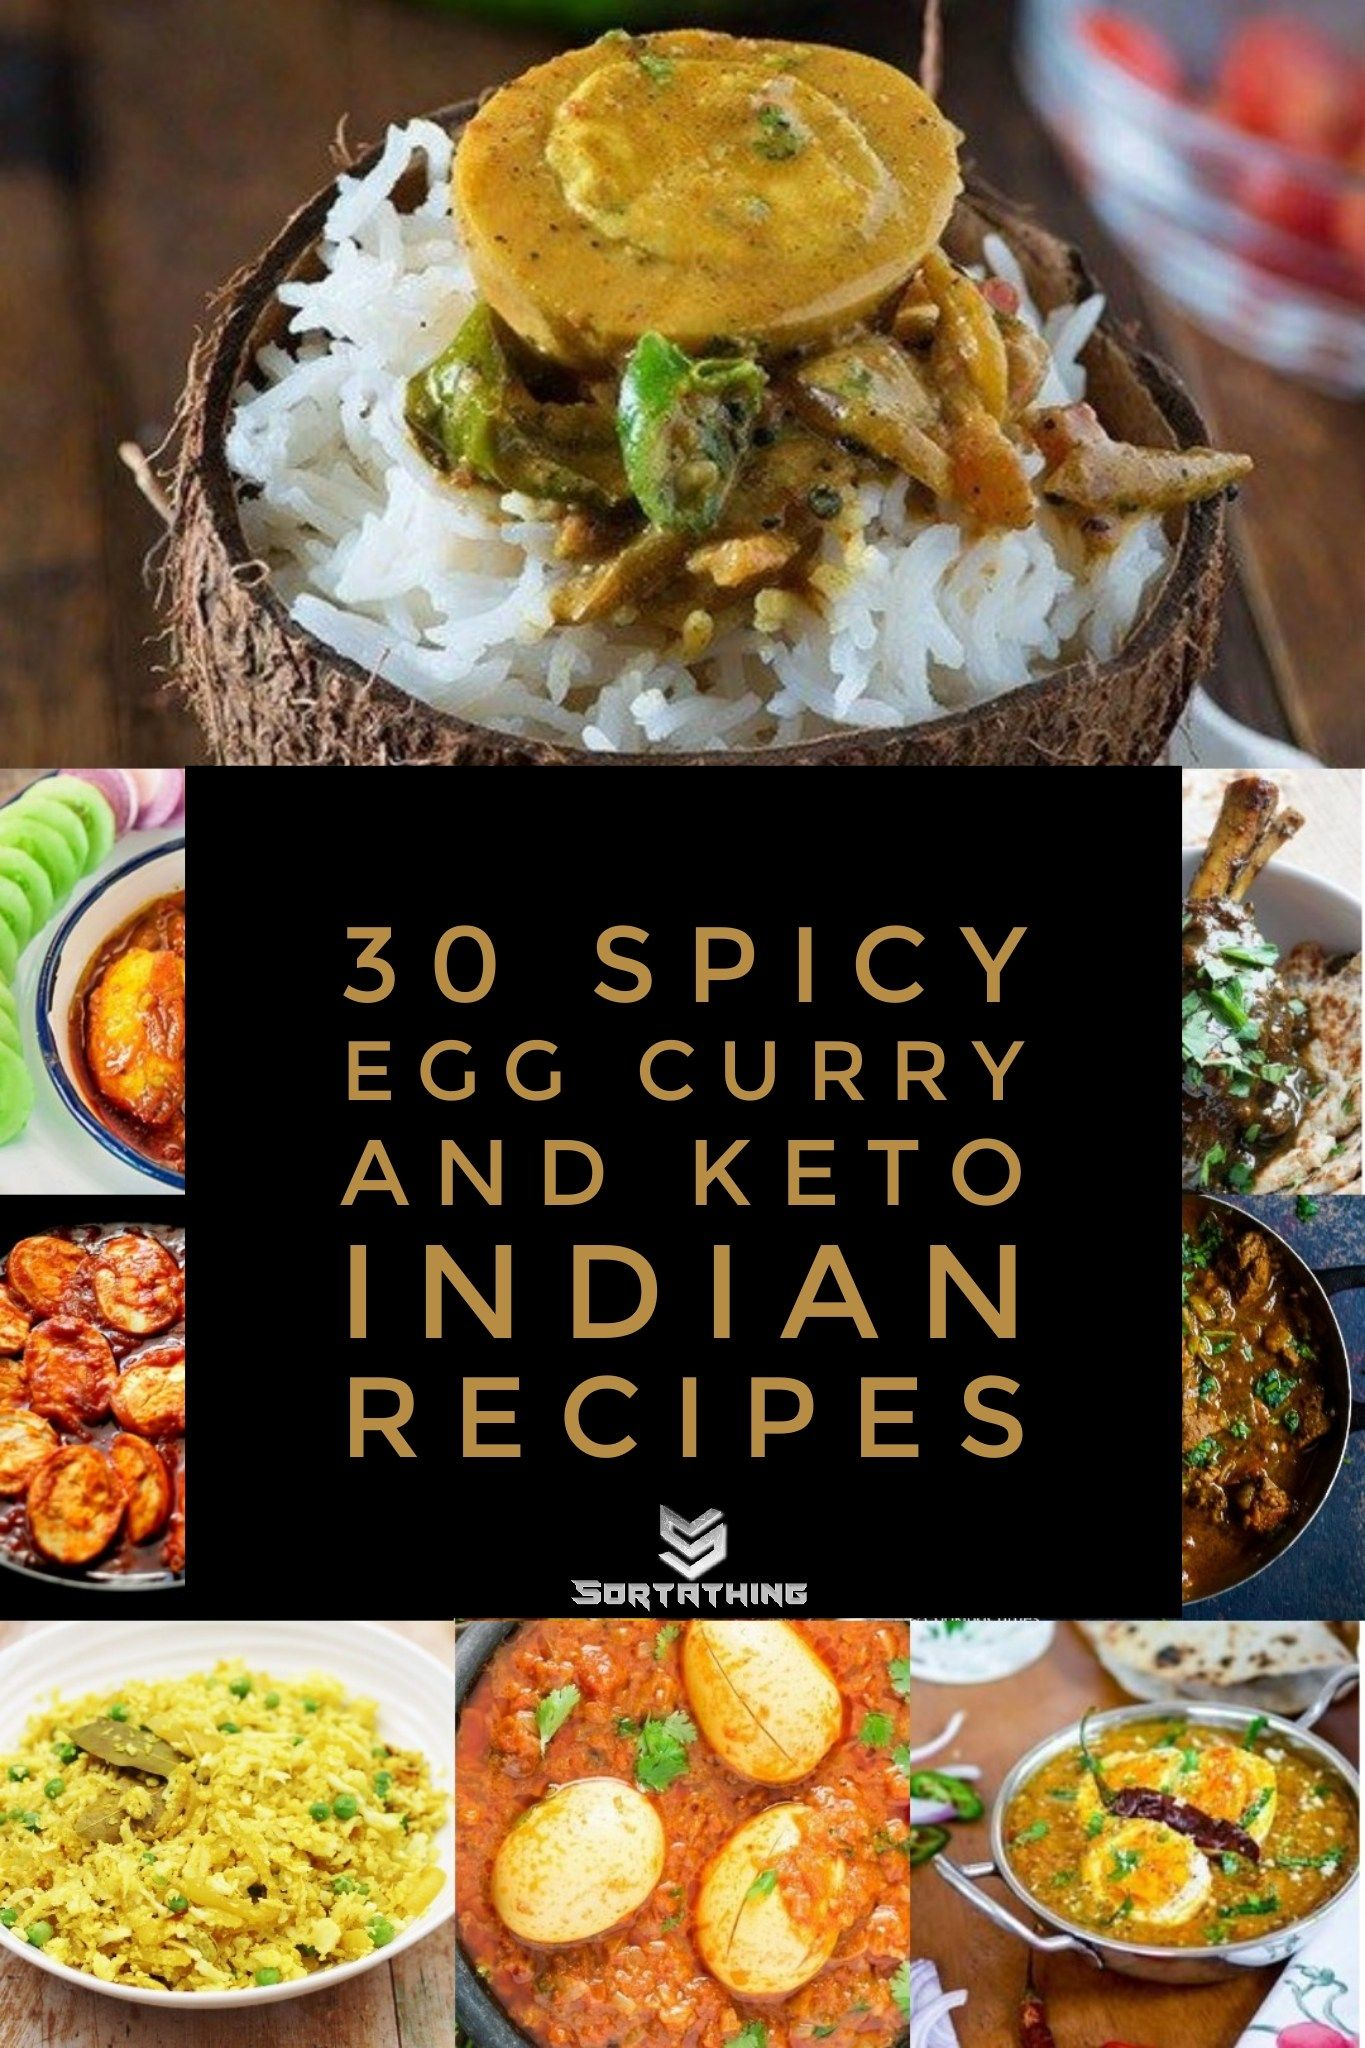 30 Spicy Egg Curry & Genius Keto Indian Recipes | Taste The